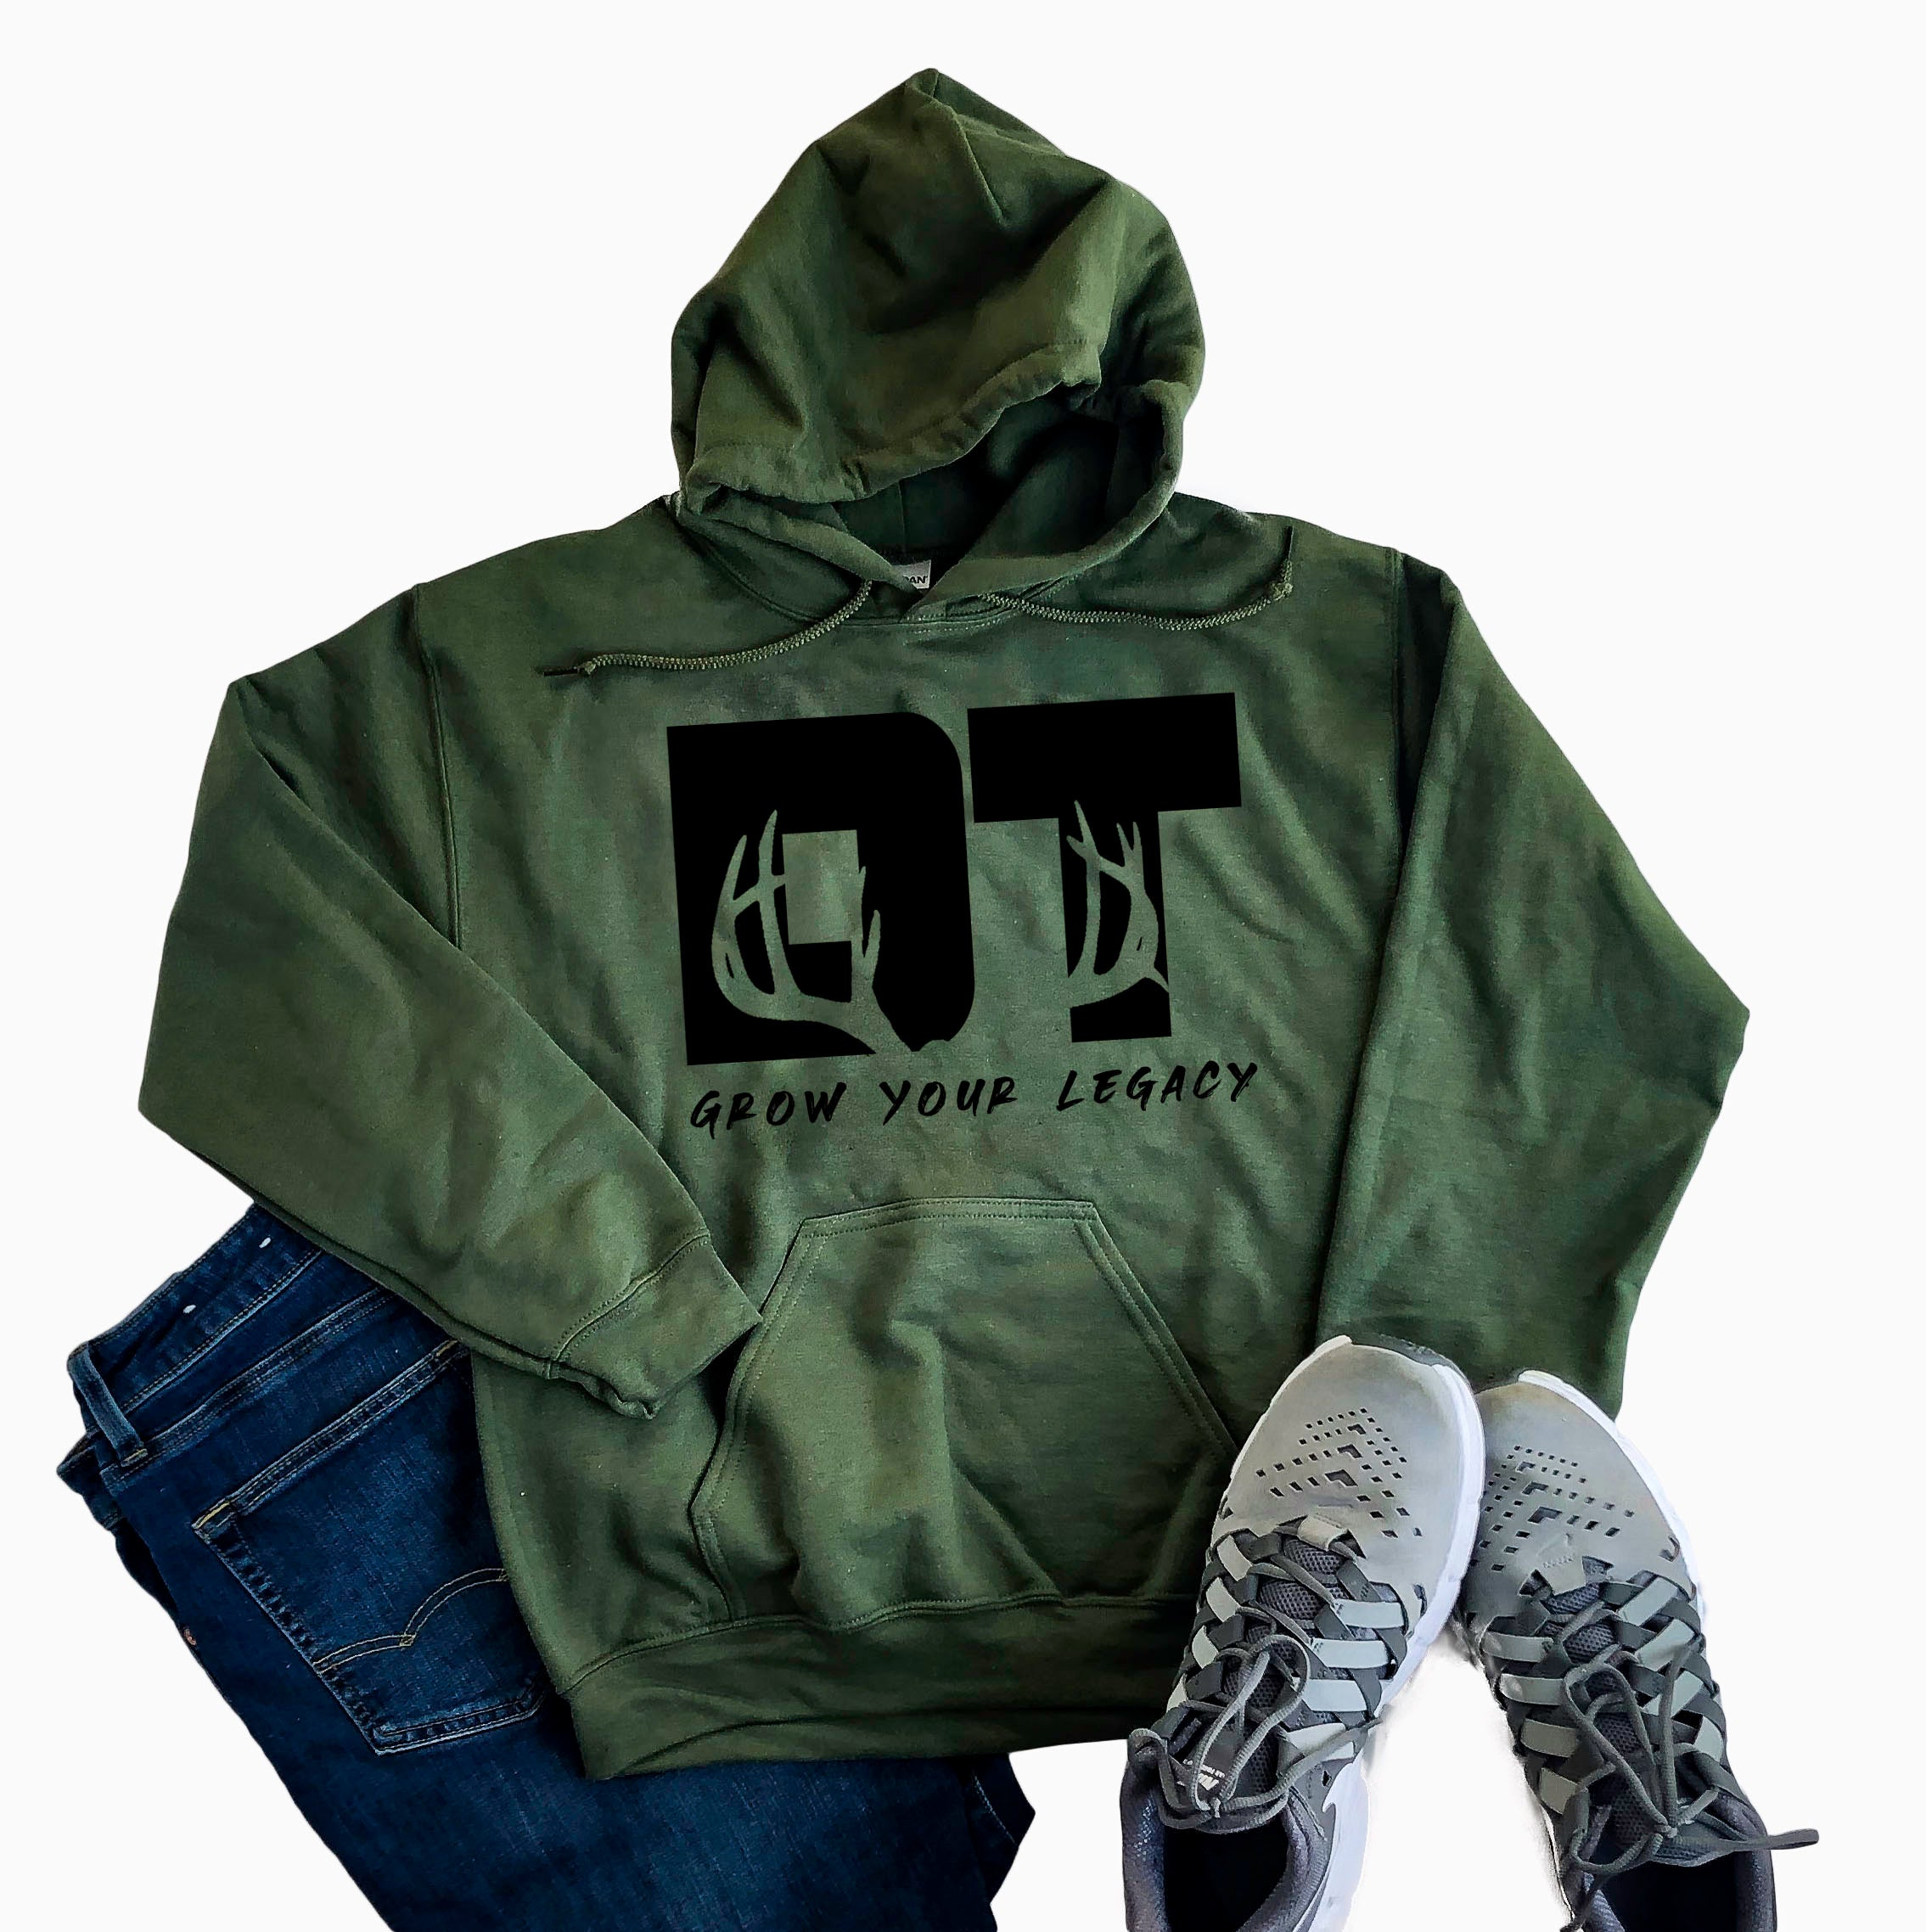 Military Green Grow Your Legacy Sweatshirt